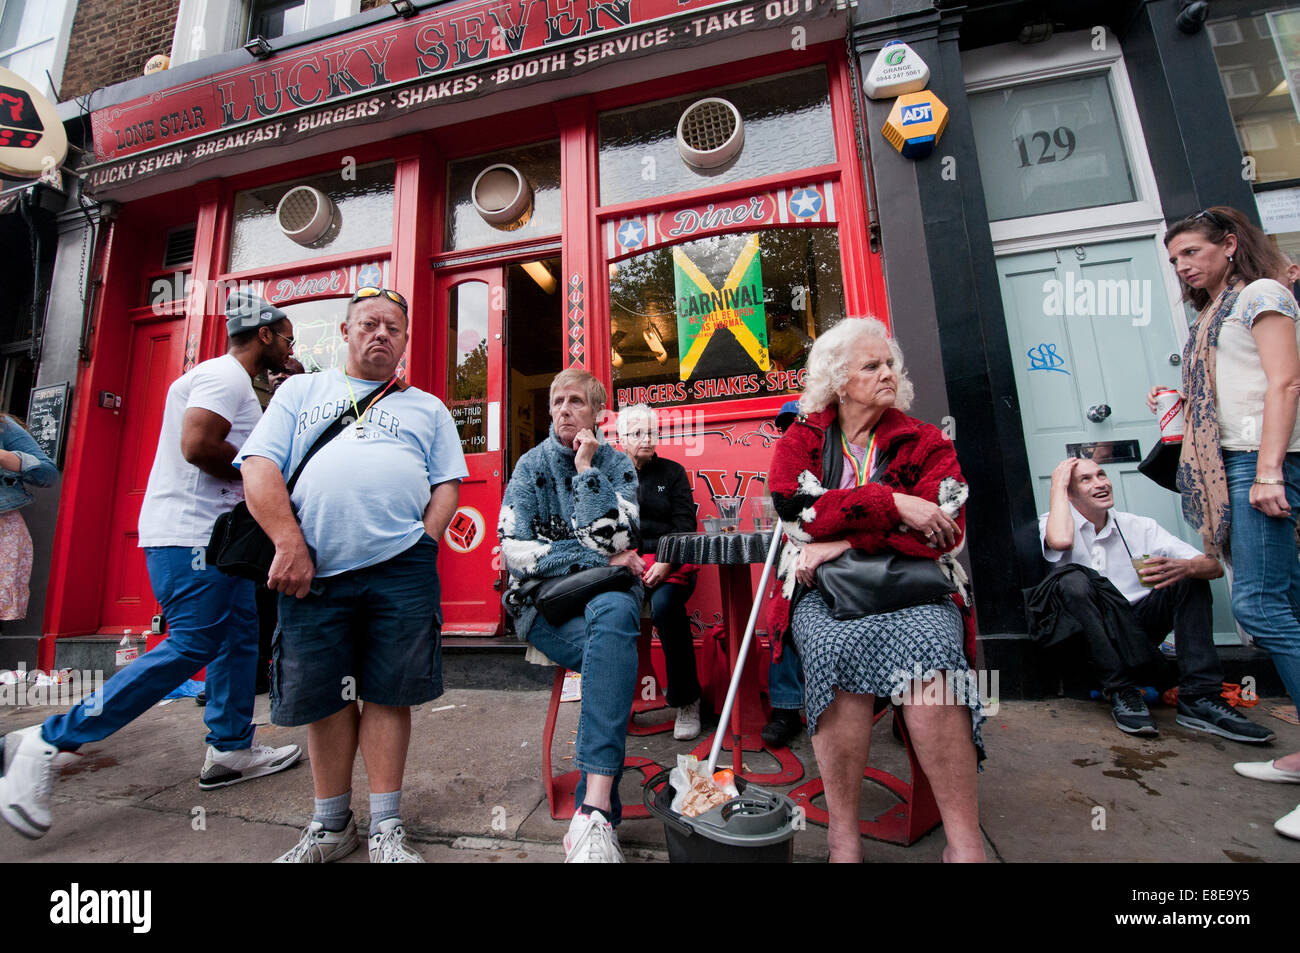 Amusing people sitting outside a Diner in Notting Hill London - Stock Image